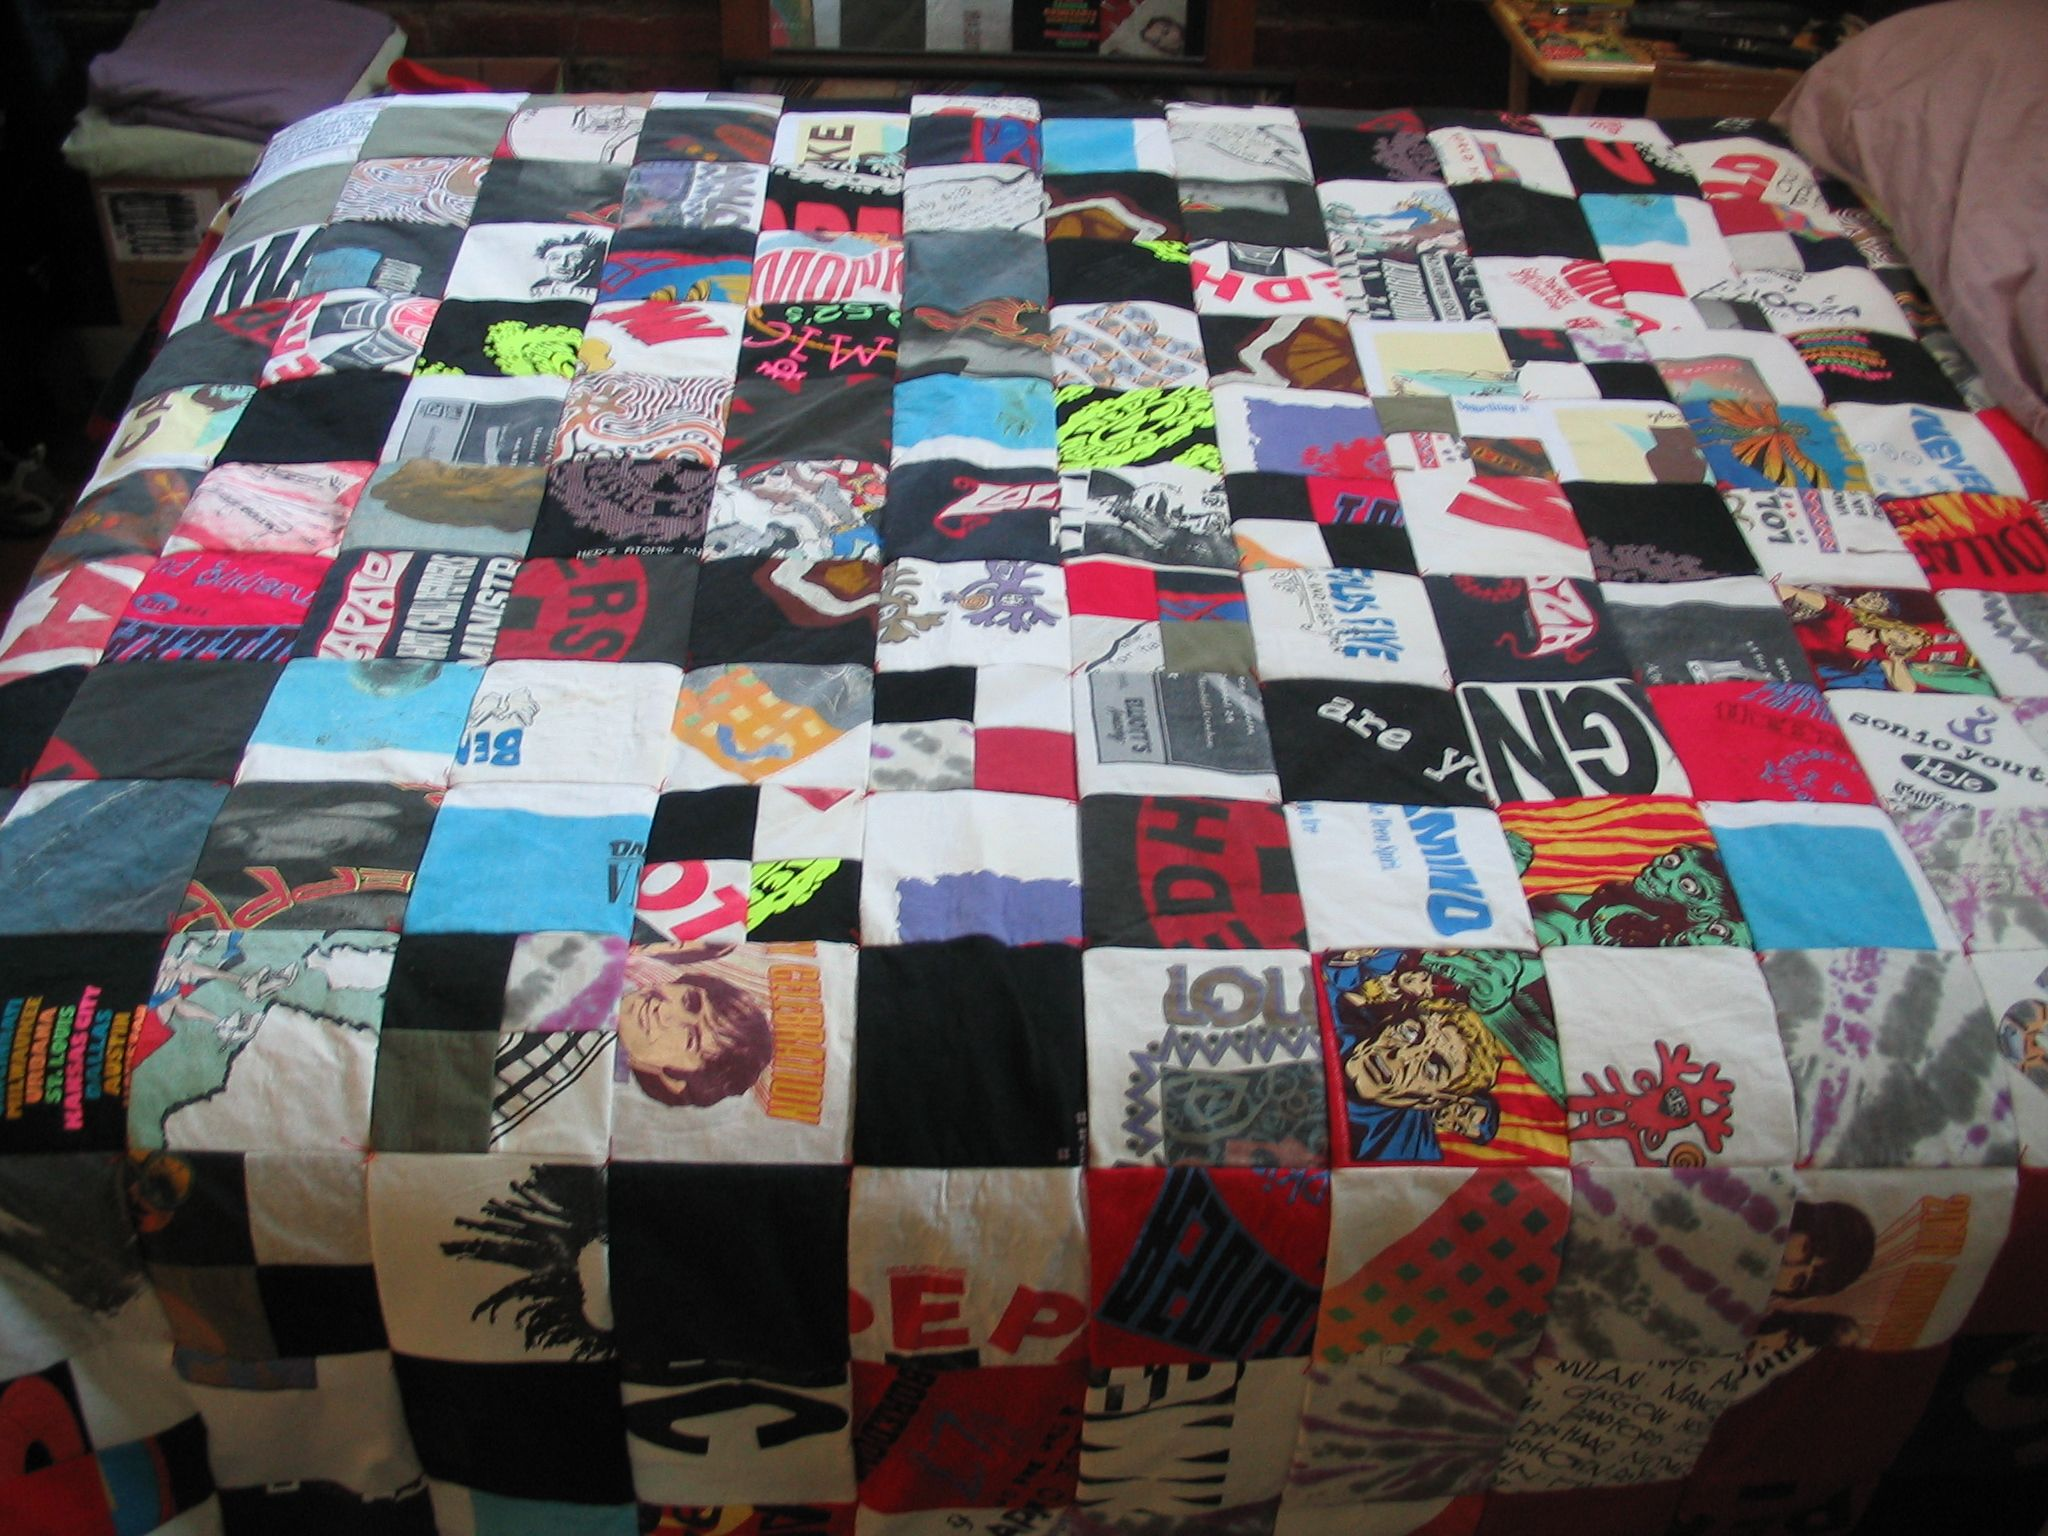 quilt made from old tshirts | Have To Try This | Pinterest | Shirt ... : pinterest t shirt quilt - Adamdwight.com